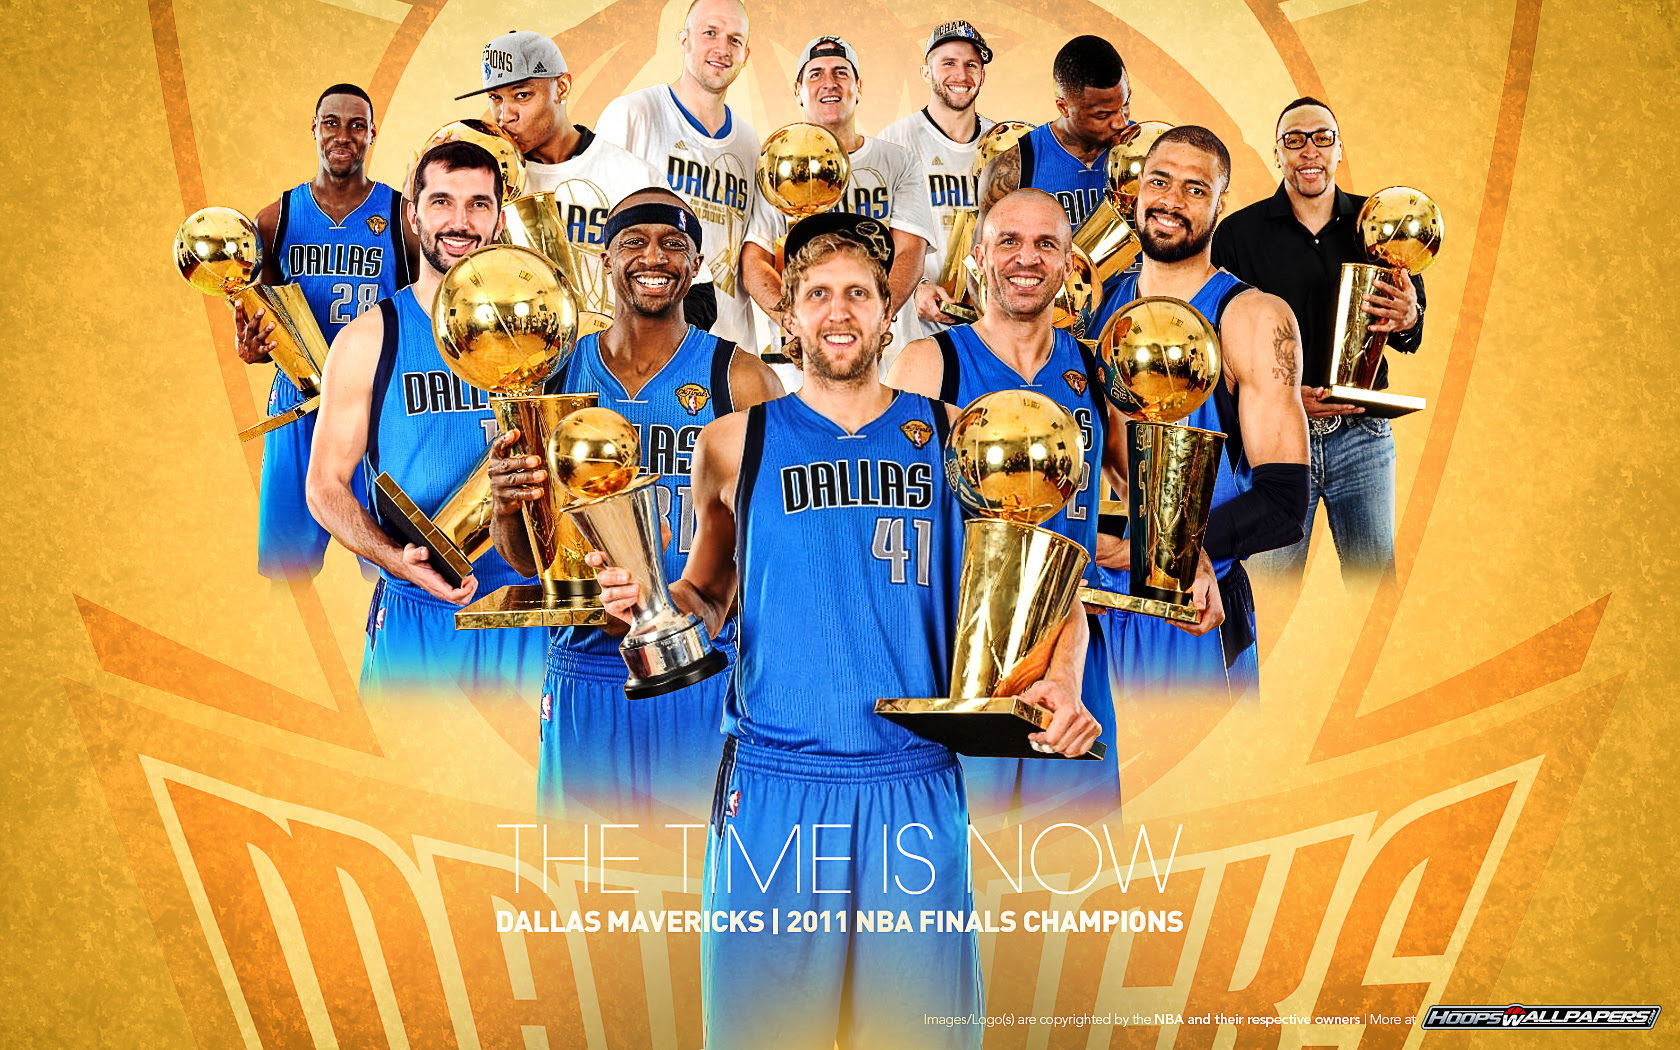 http://syntaxzz.files.wordpress.com/2011/06/dallas-mavericks-2011-nba-champions-wallpaper.jpg